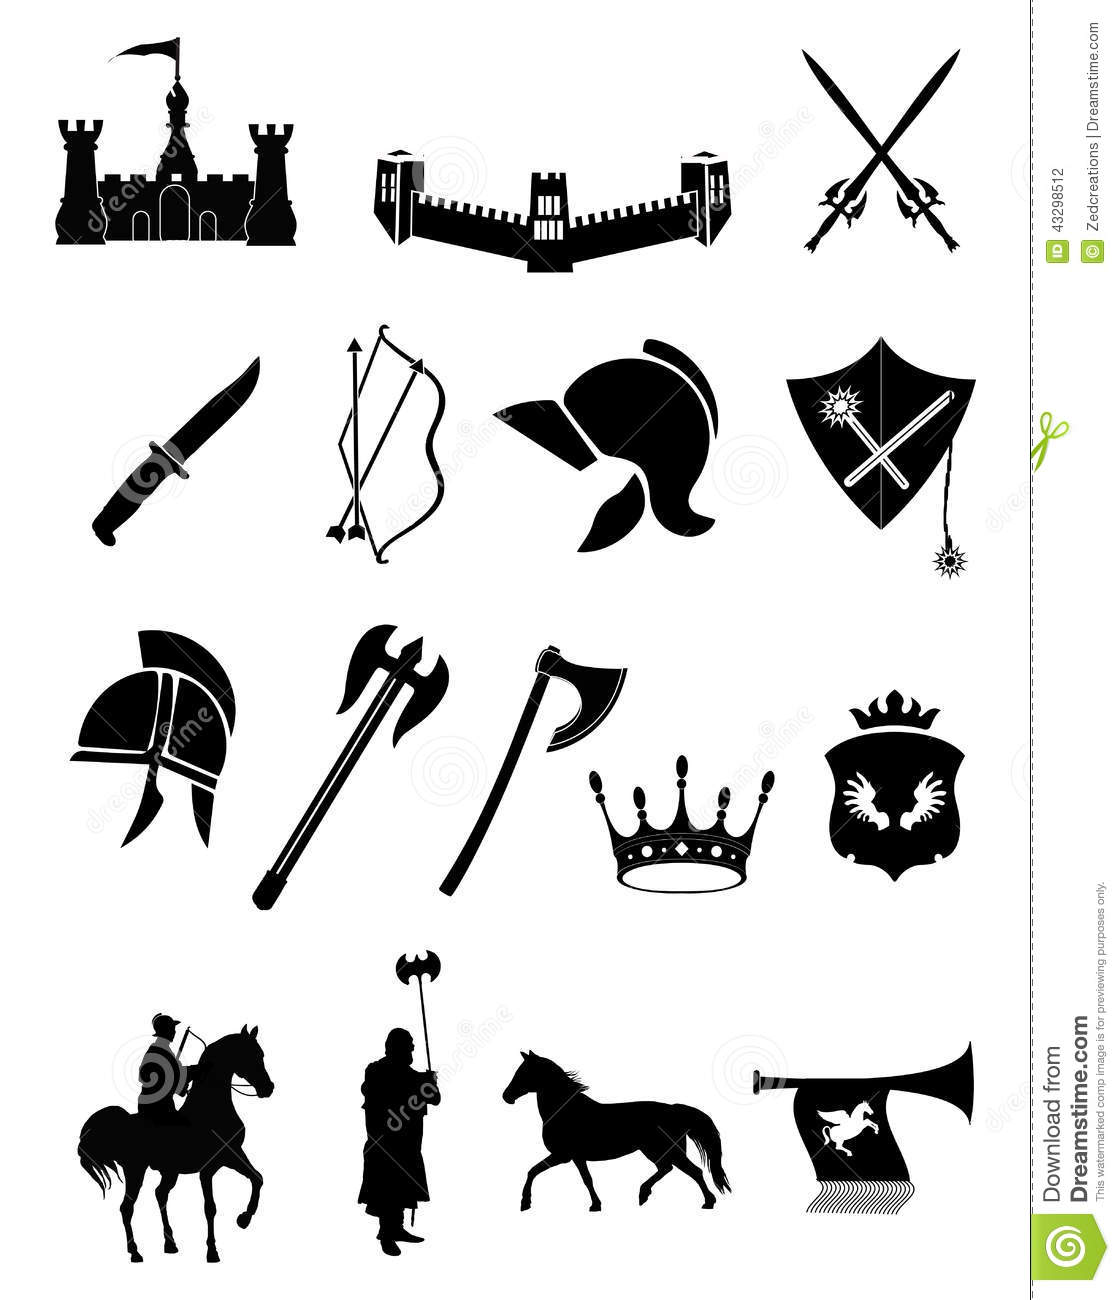 Stock Illustration Medieval Weapons Icons Set Ancient Icon Set Black Image43298512 further Lewes History Group Bulletin 7 11 February 2011 furthermore P together with Castle further Medieval Italian Or Spanish Villa Plan Gm639064406 114976115. on medieval castle